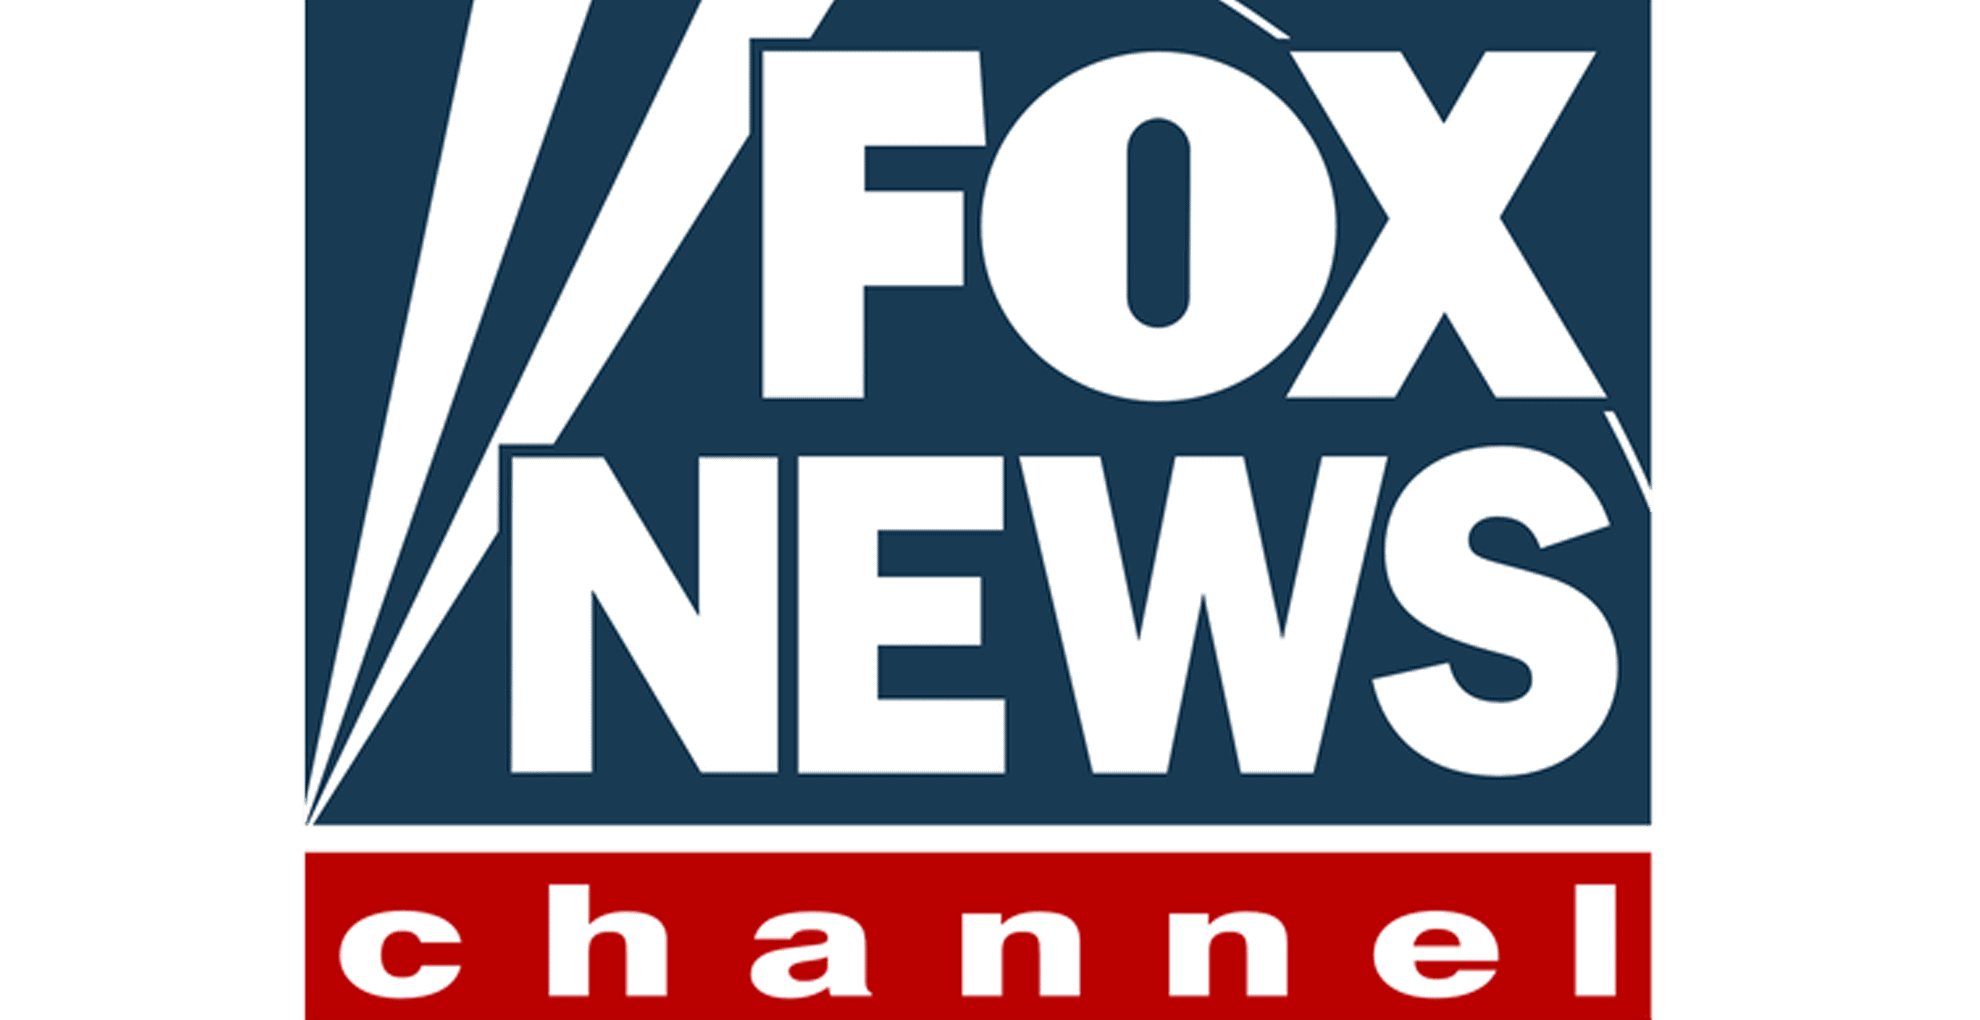 FOX-NEWS channel slave labor report